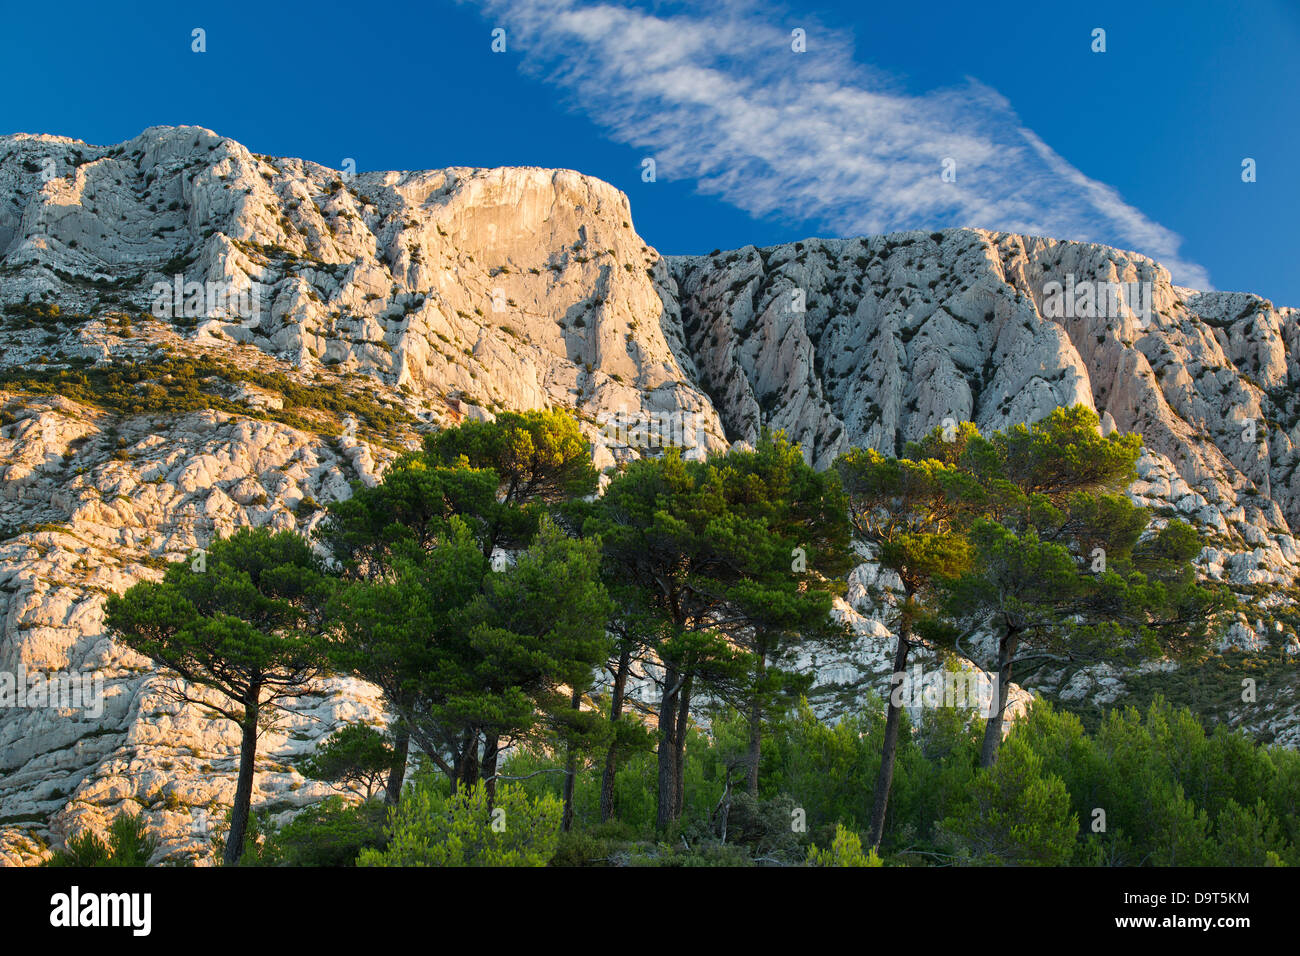 Montagne Ste Victoire at dawn, Var, Provence, France - Stock Image